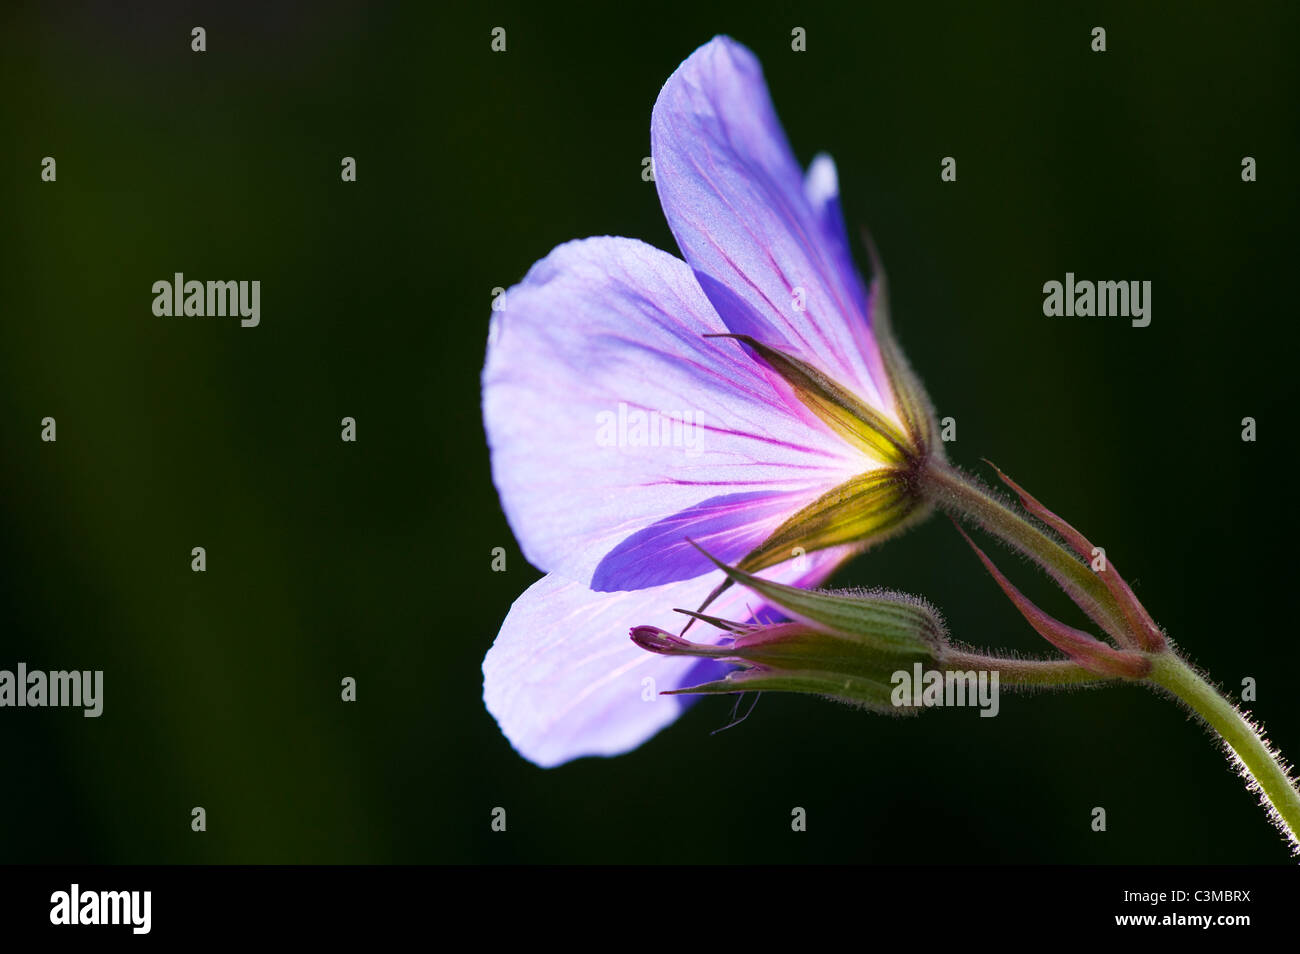 Geranium Orion. Cranesbill flower and bud. Spot metered and lit up by sunlight - Stock Image